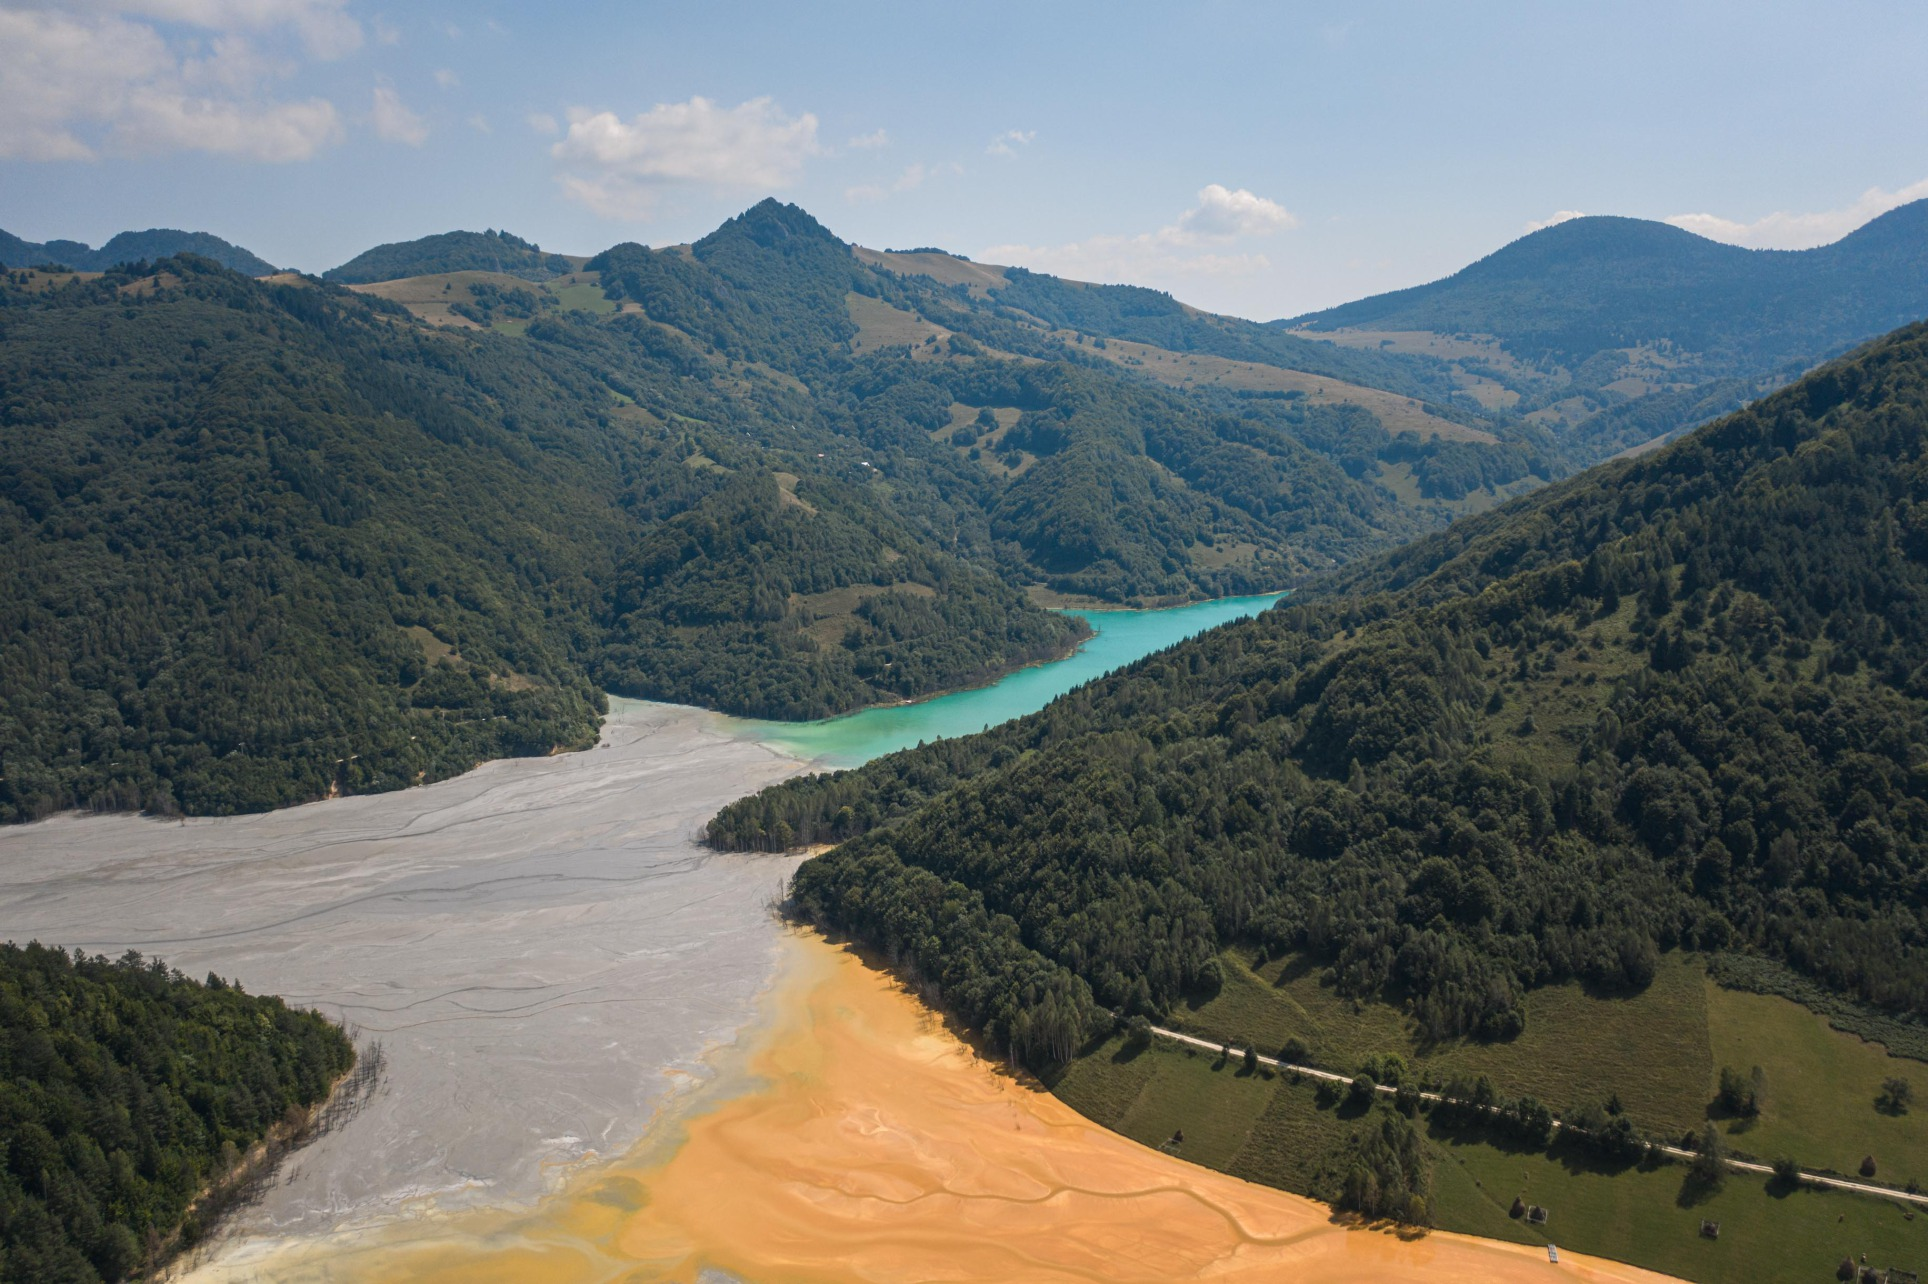 Various toxic materials have already infiltrated the groundwater in the area. Things could even get worse when toxic pollution reaches a closeby river. This would result in an even larger spread crossing borders, turning into a big environmental disaster.